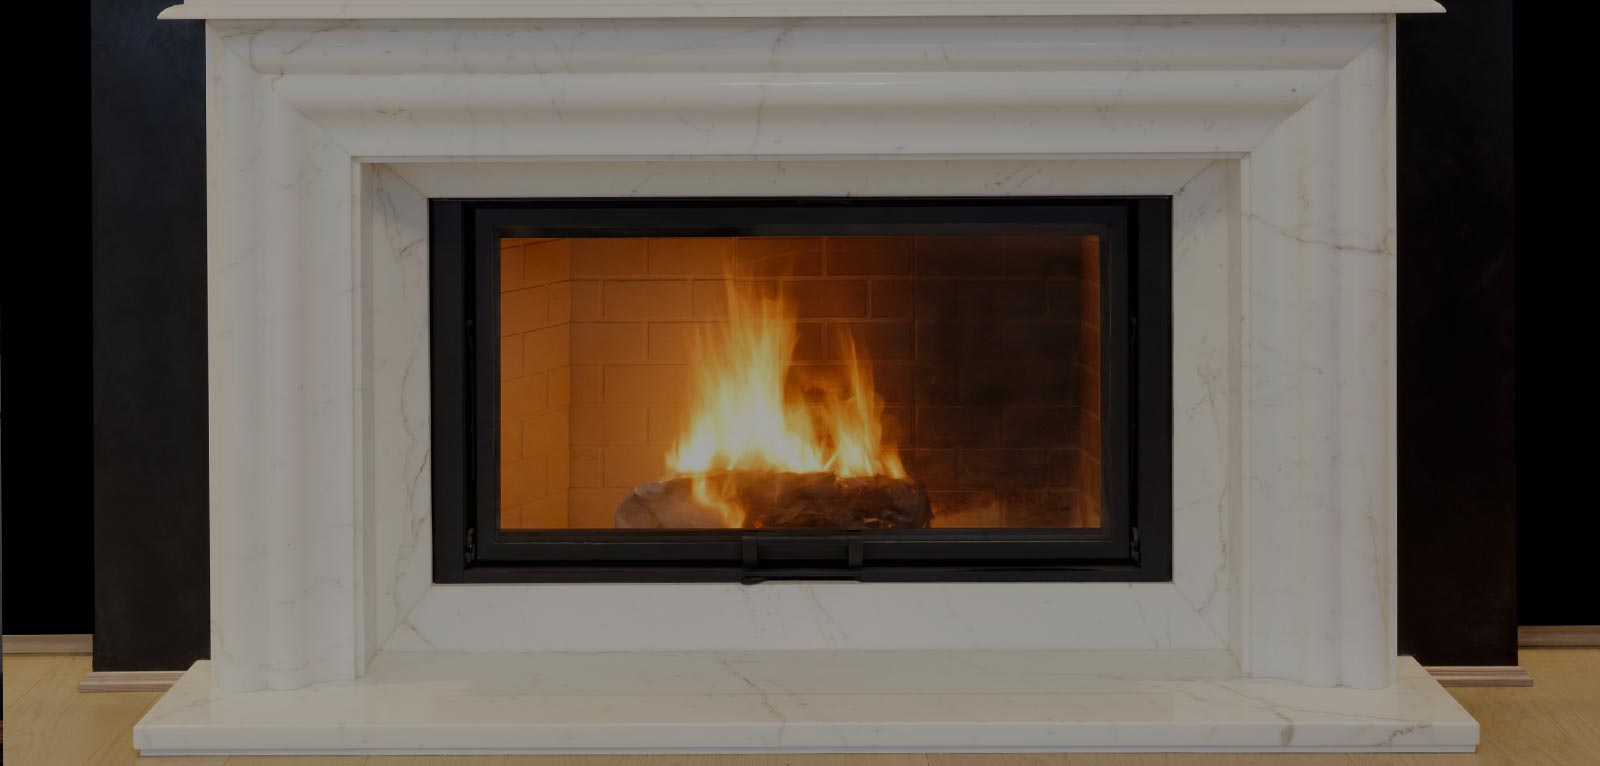 Murray & McGregor Fireplaces